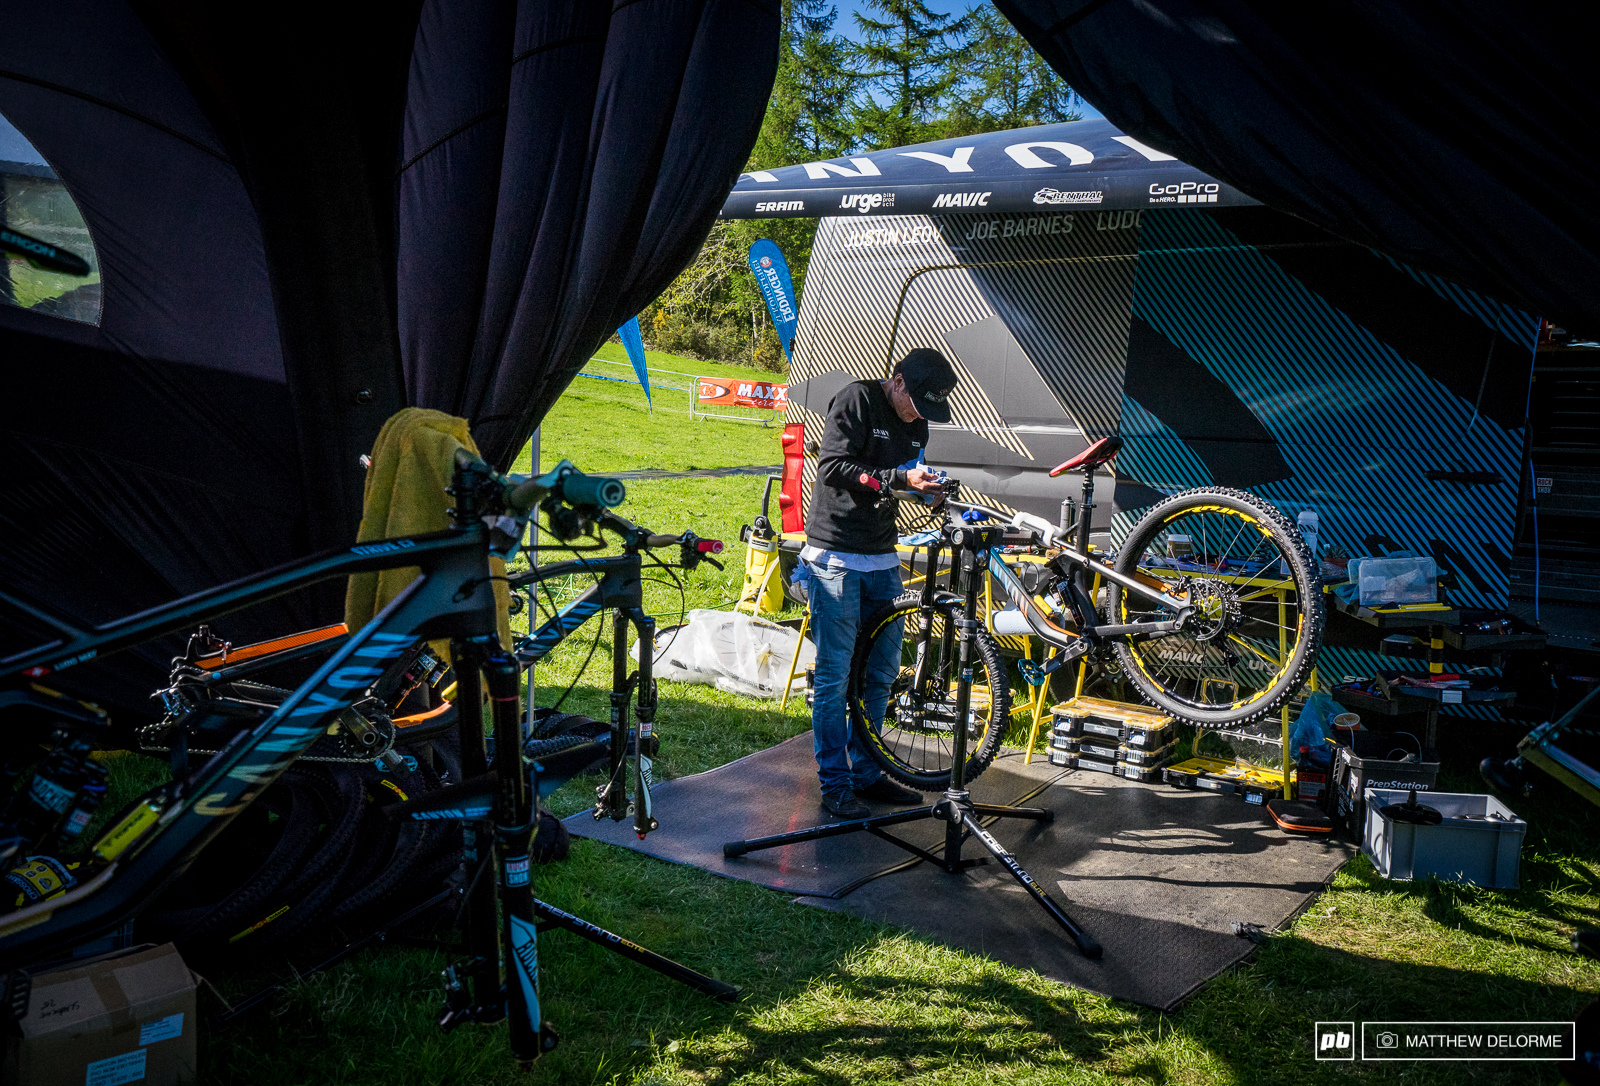 Final preparations are being made before race day. Now it s up to the riders to keep their steeds in one piece through seven stages in one day.